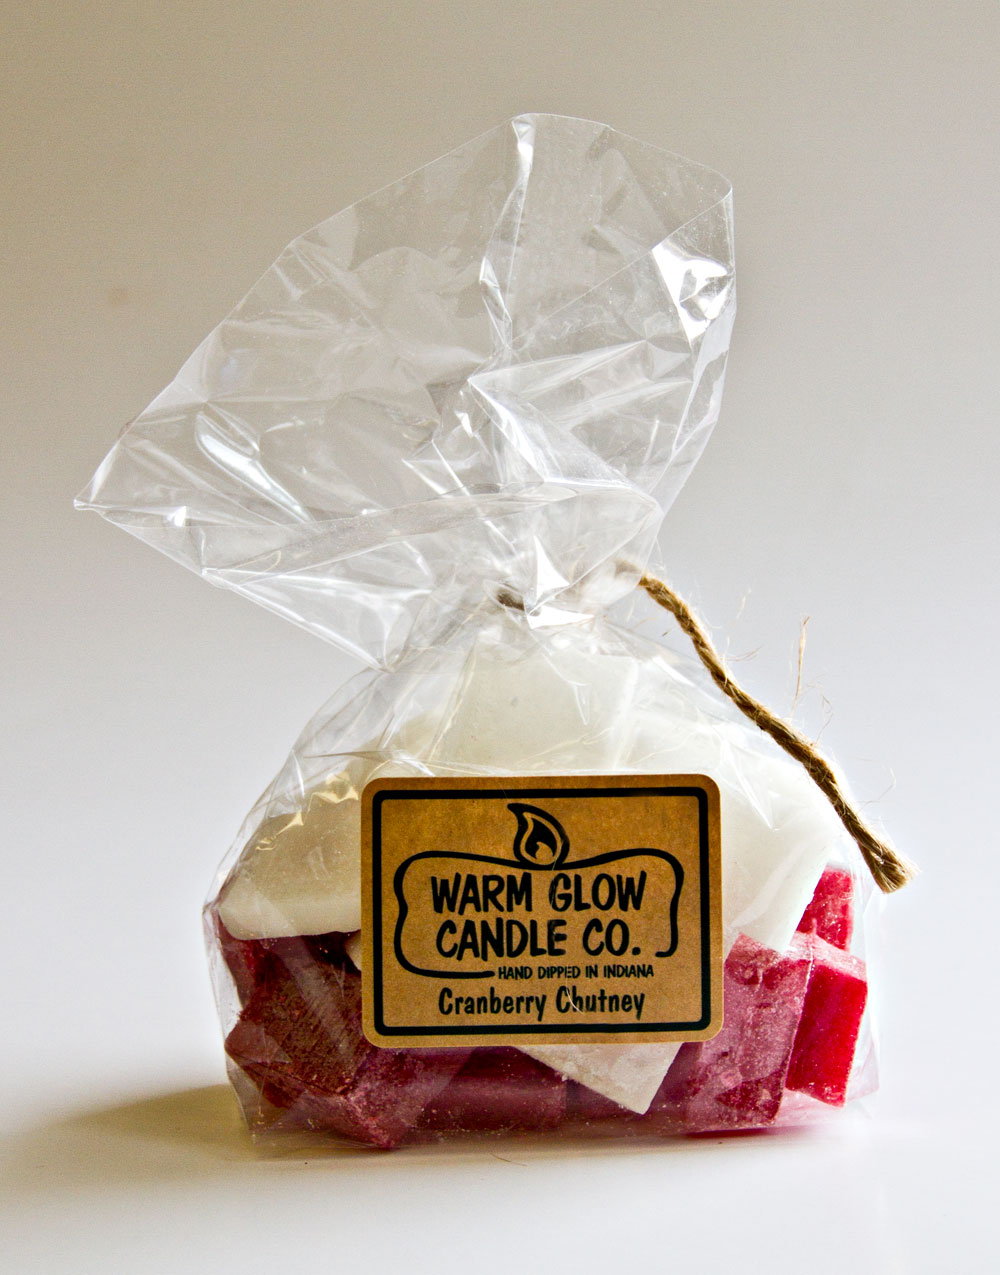 Cranberry Chutney Warm Glow Scented Wax Chips